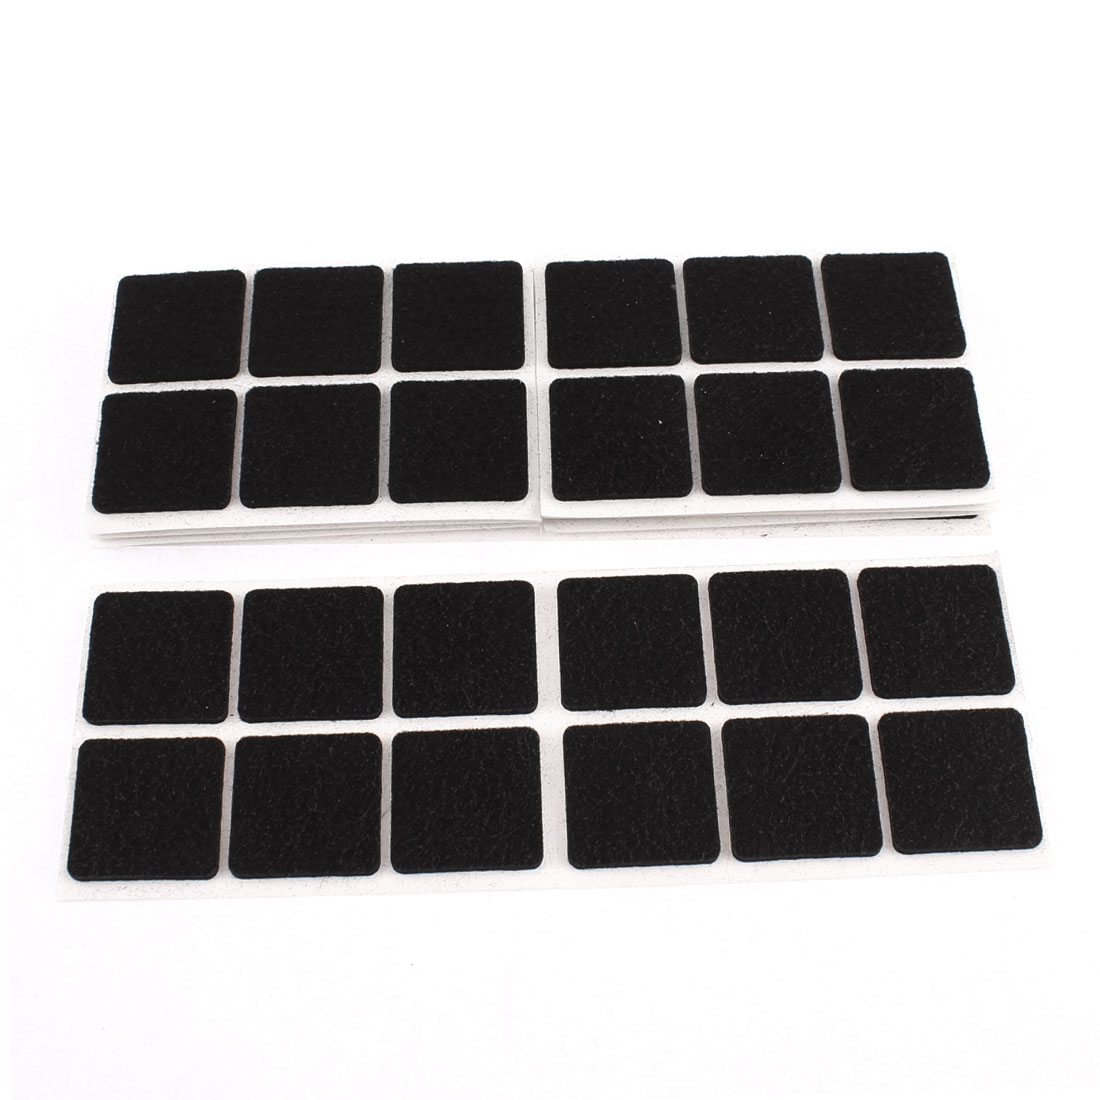 Furniture Feet Antiskid Adhesive Protection Pads Felt Floor Protector 60 Pcs